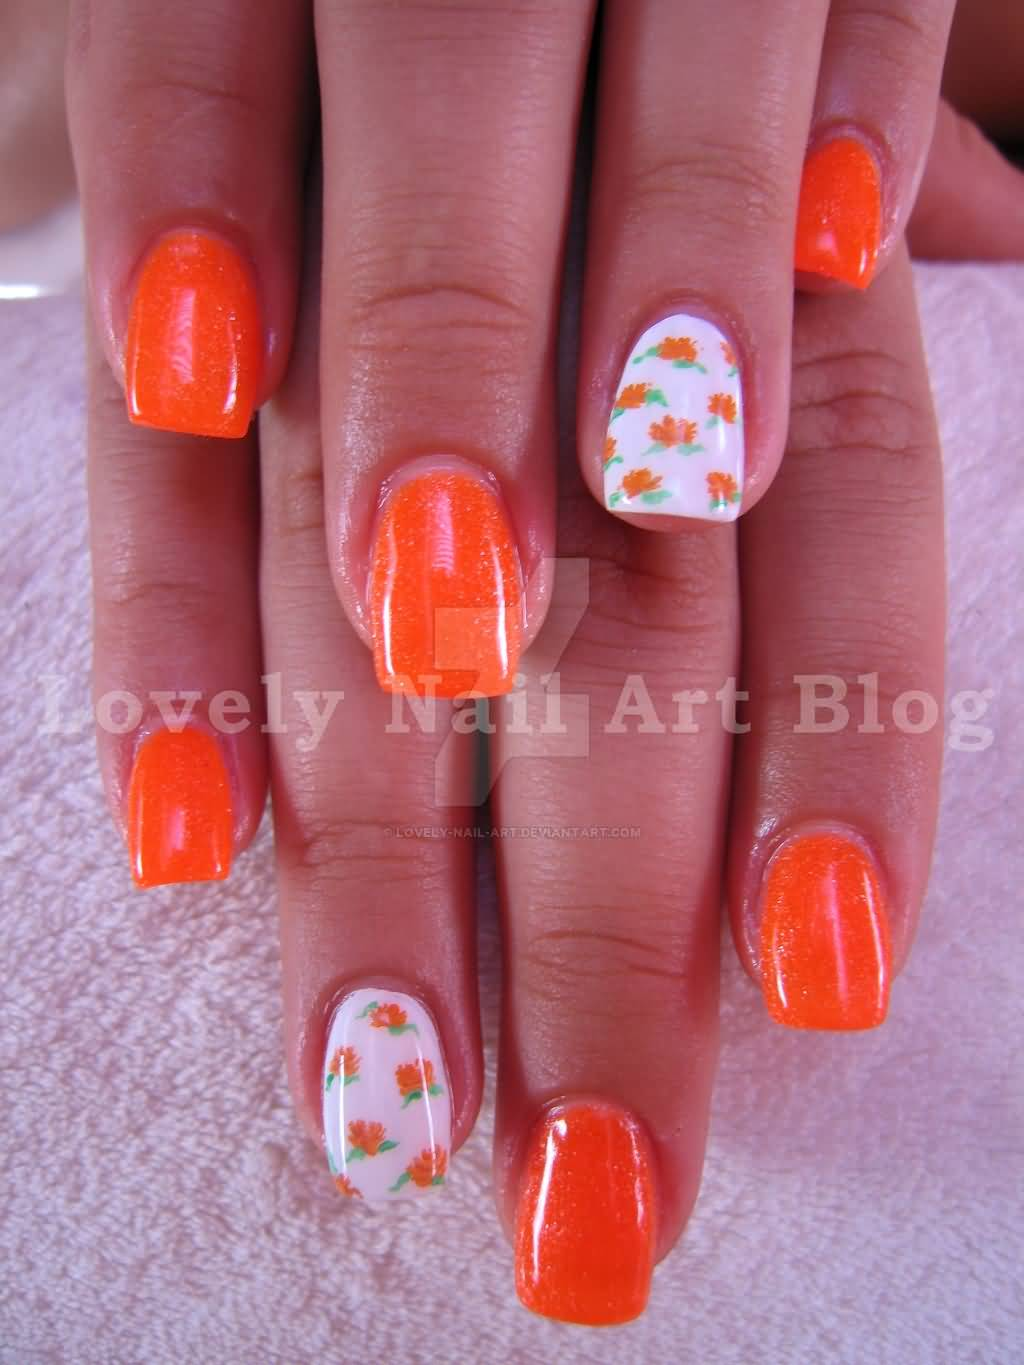 Neon Orange Flowers On White Nail Art Design